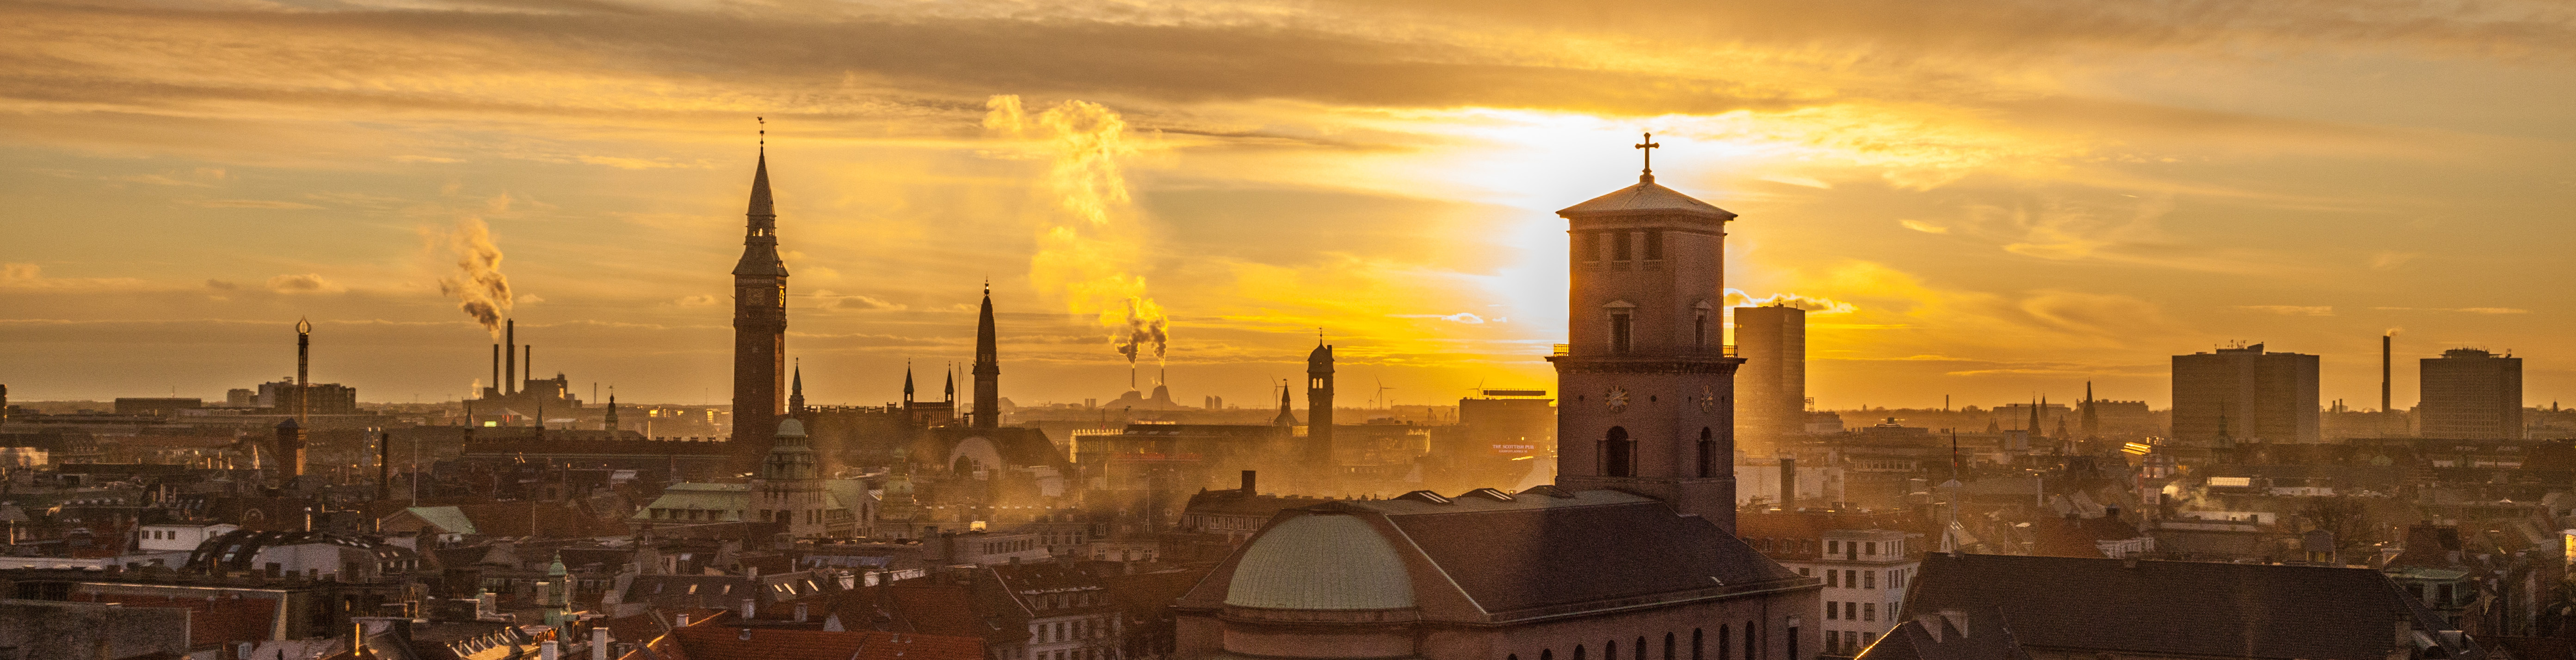 The Copenhagen skyline in evening light with the tower of the Copenhagen cathedral